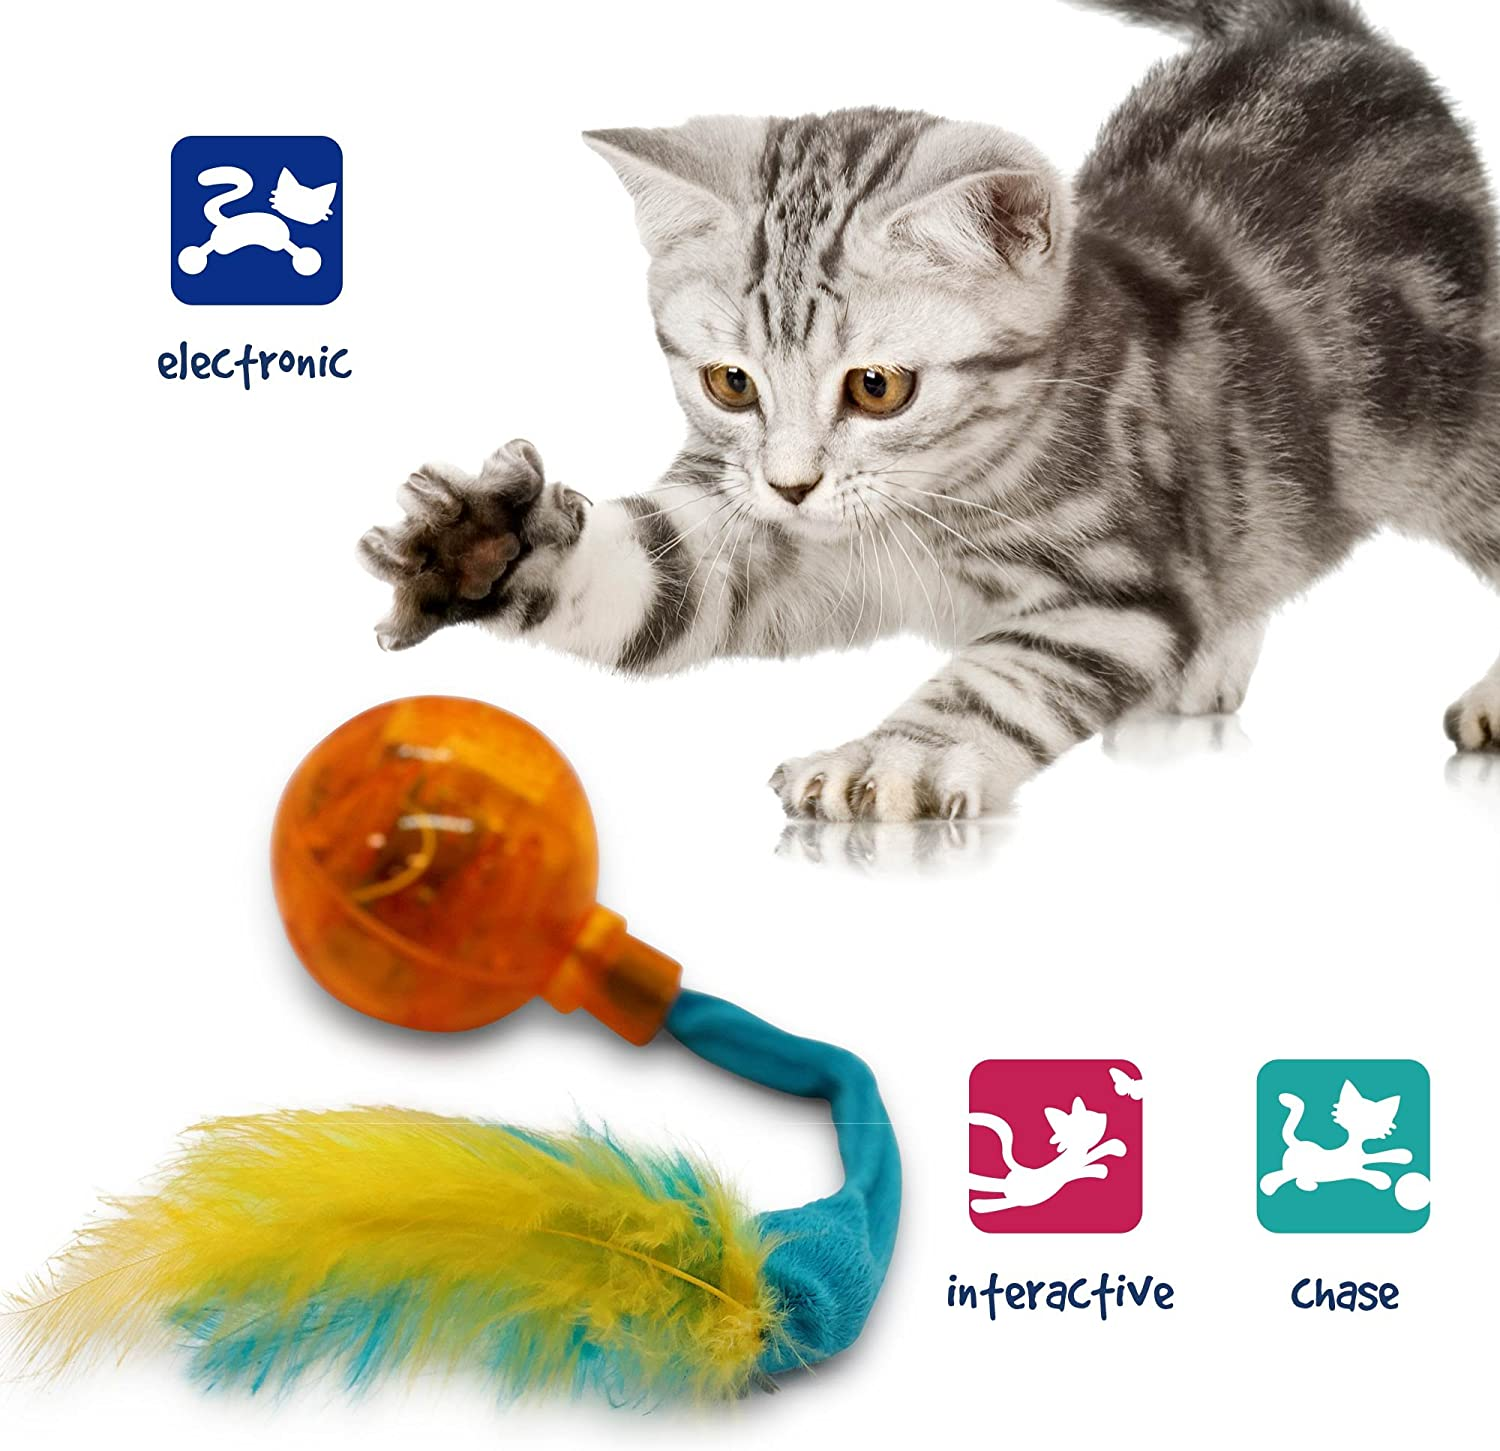 Enjoy One Another. DAHO Cat Toys.Spring Doll Cat Toys with Interactive Feather and Light Ball.Let Your Cat Baby Play Fun and Improve The Intelligence